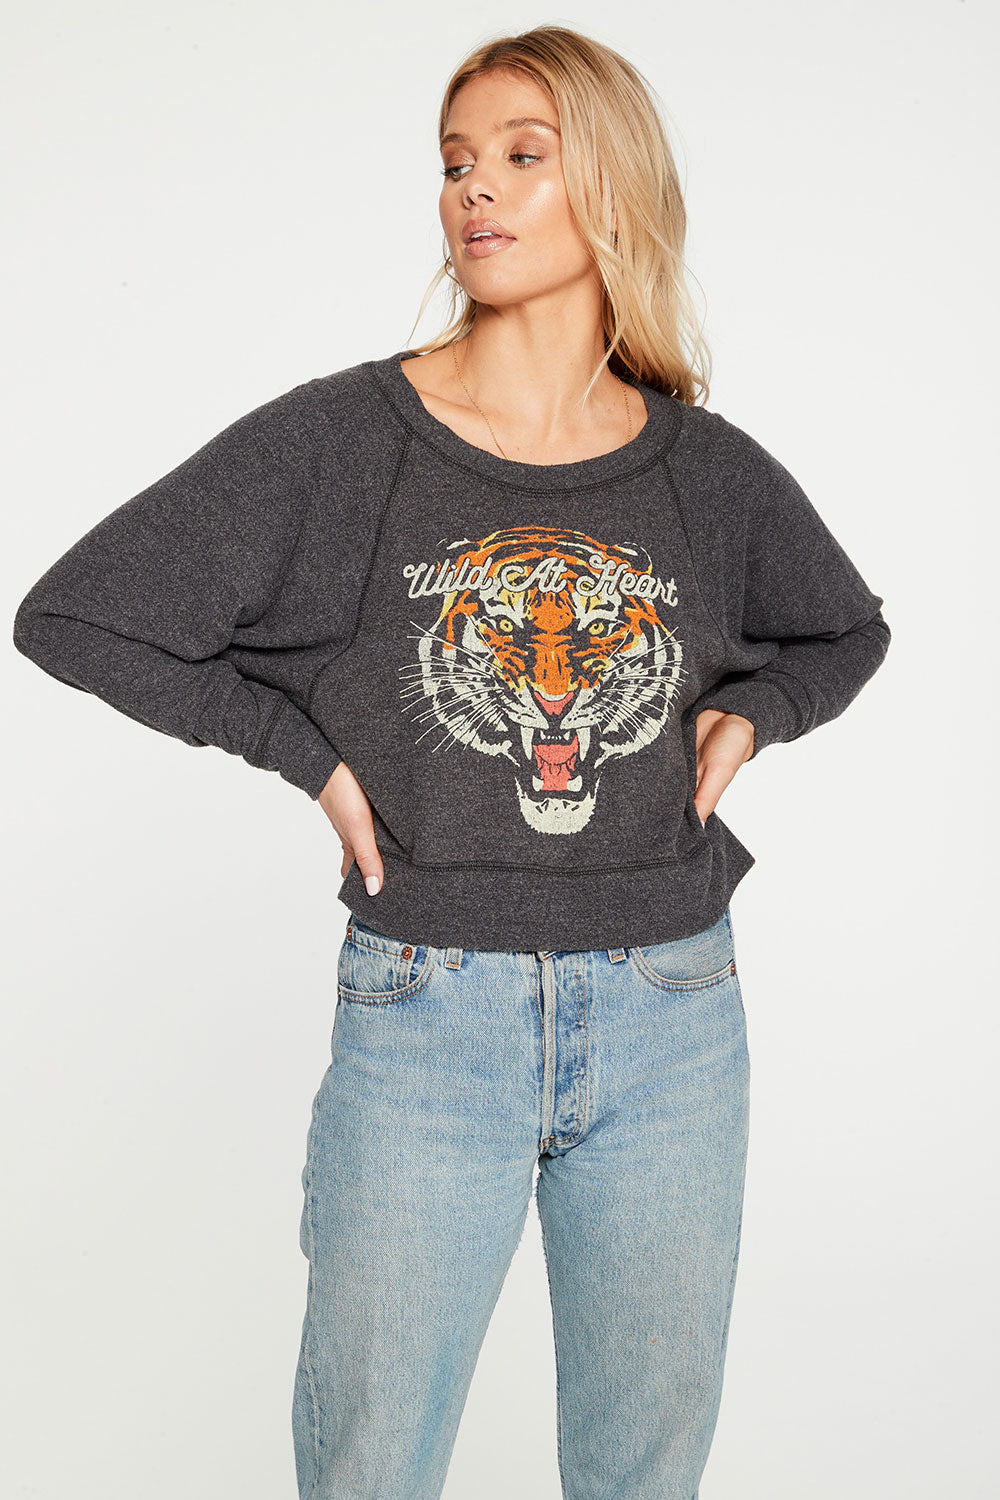 Wild At Heart WOMENS - chaserbrand